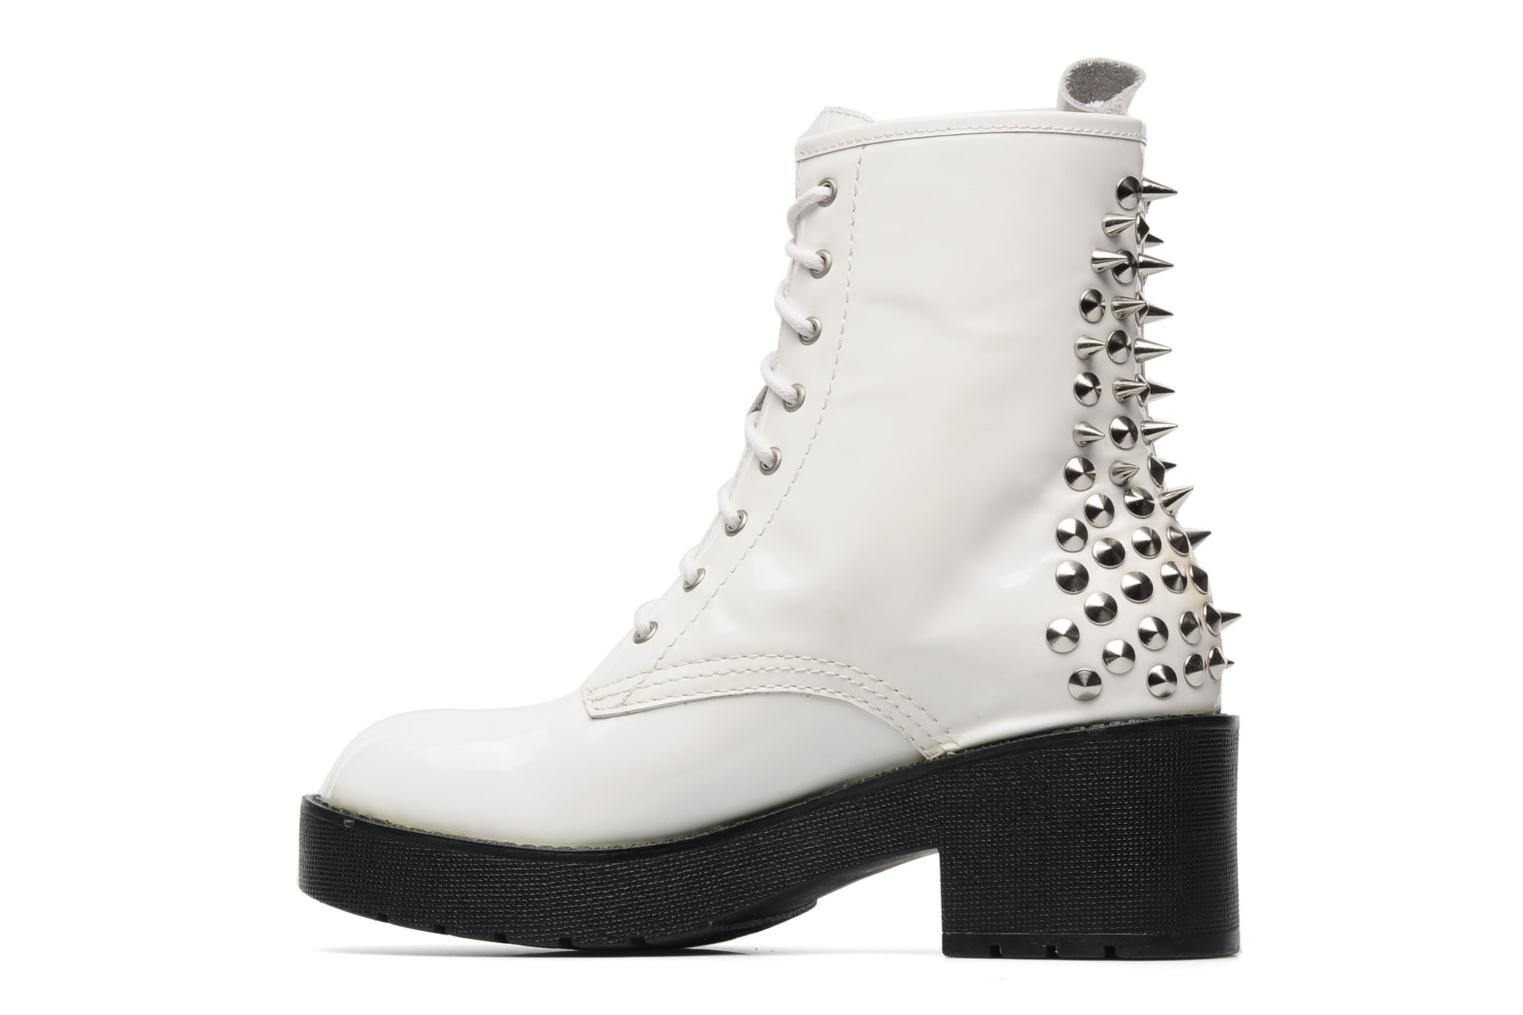 8TH STREET WHITE PATENT / SILVER STUDS